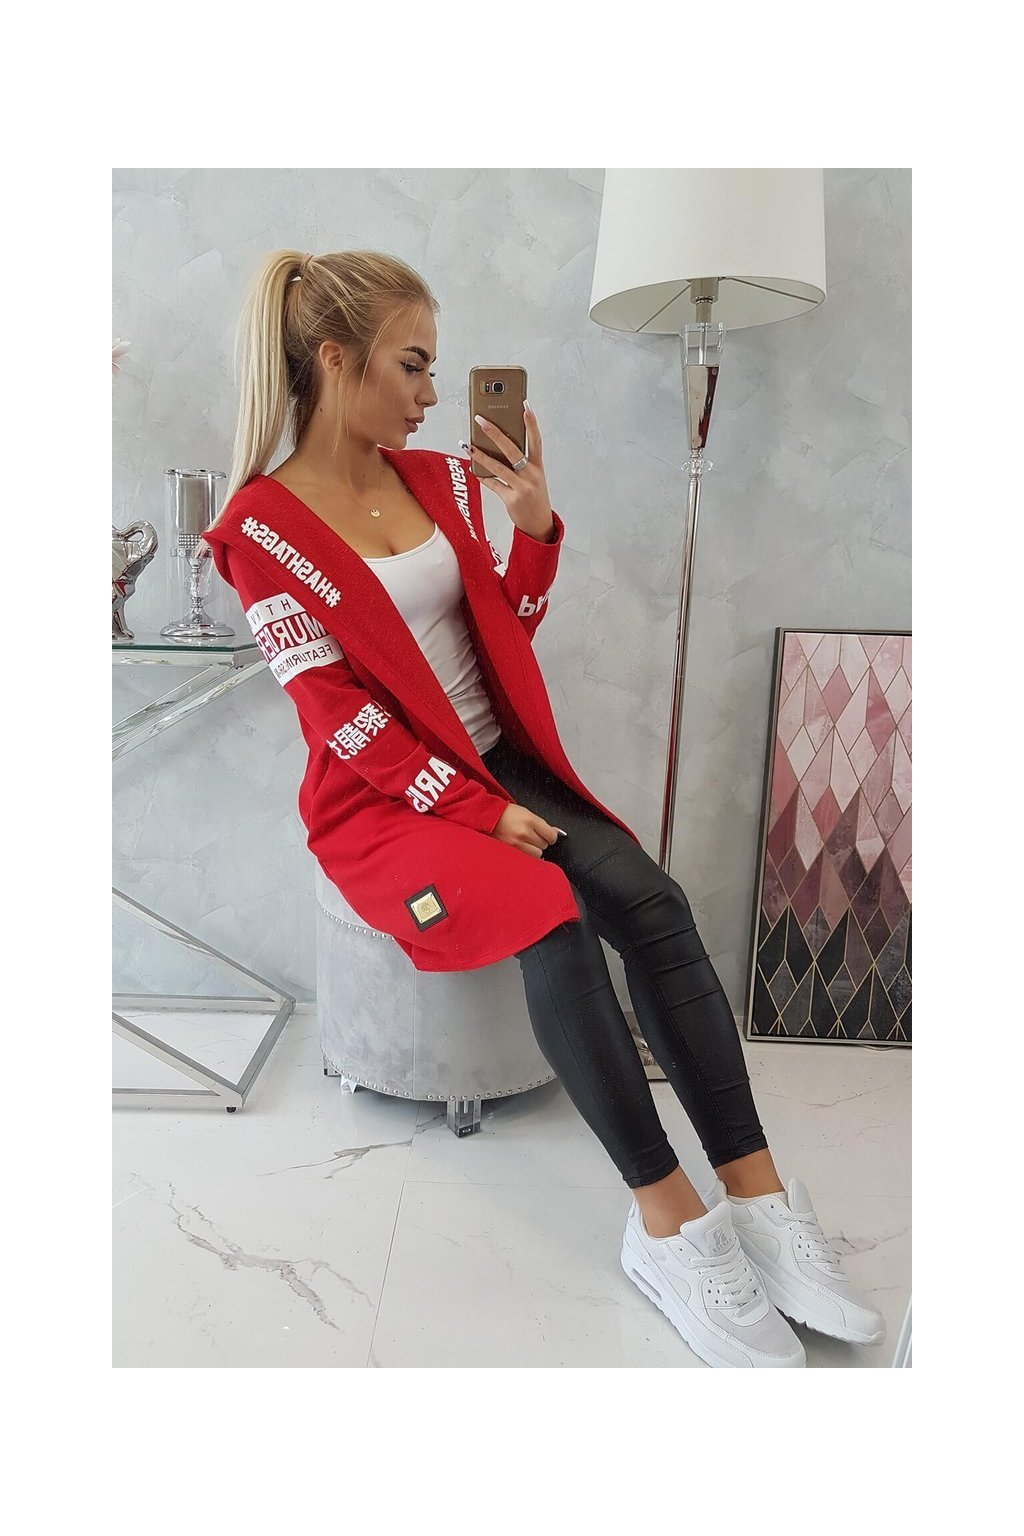 eng pl A coatee with subtitles red 9516 10